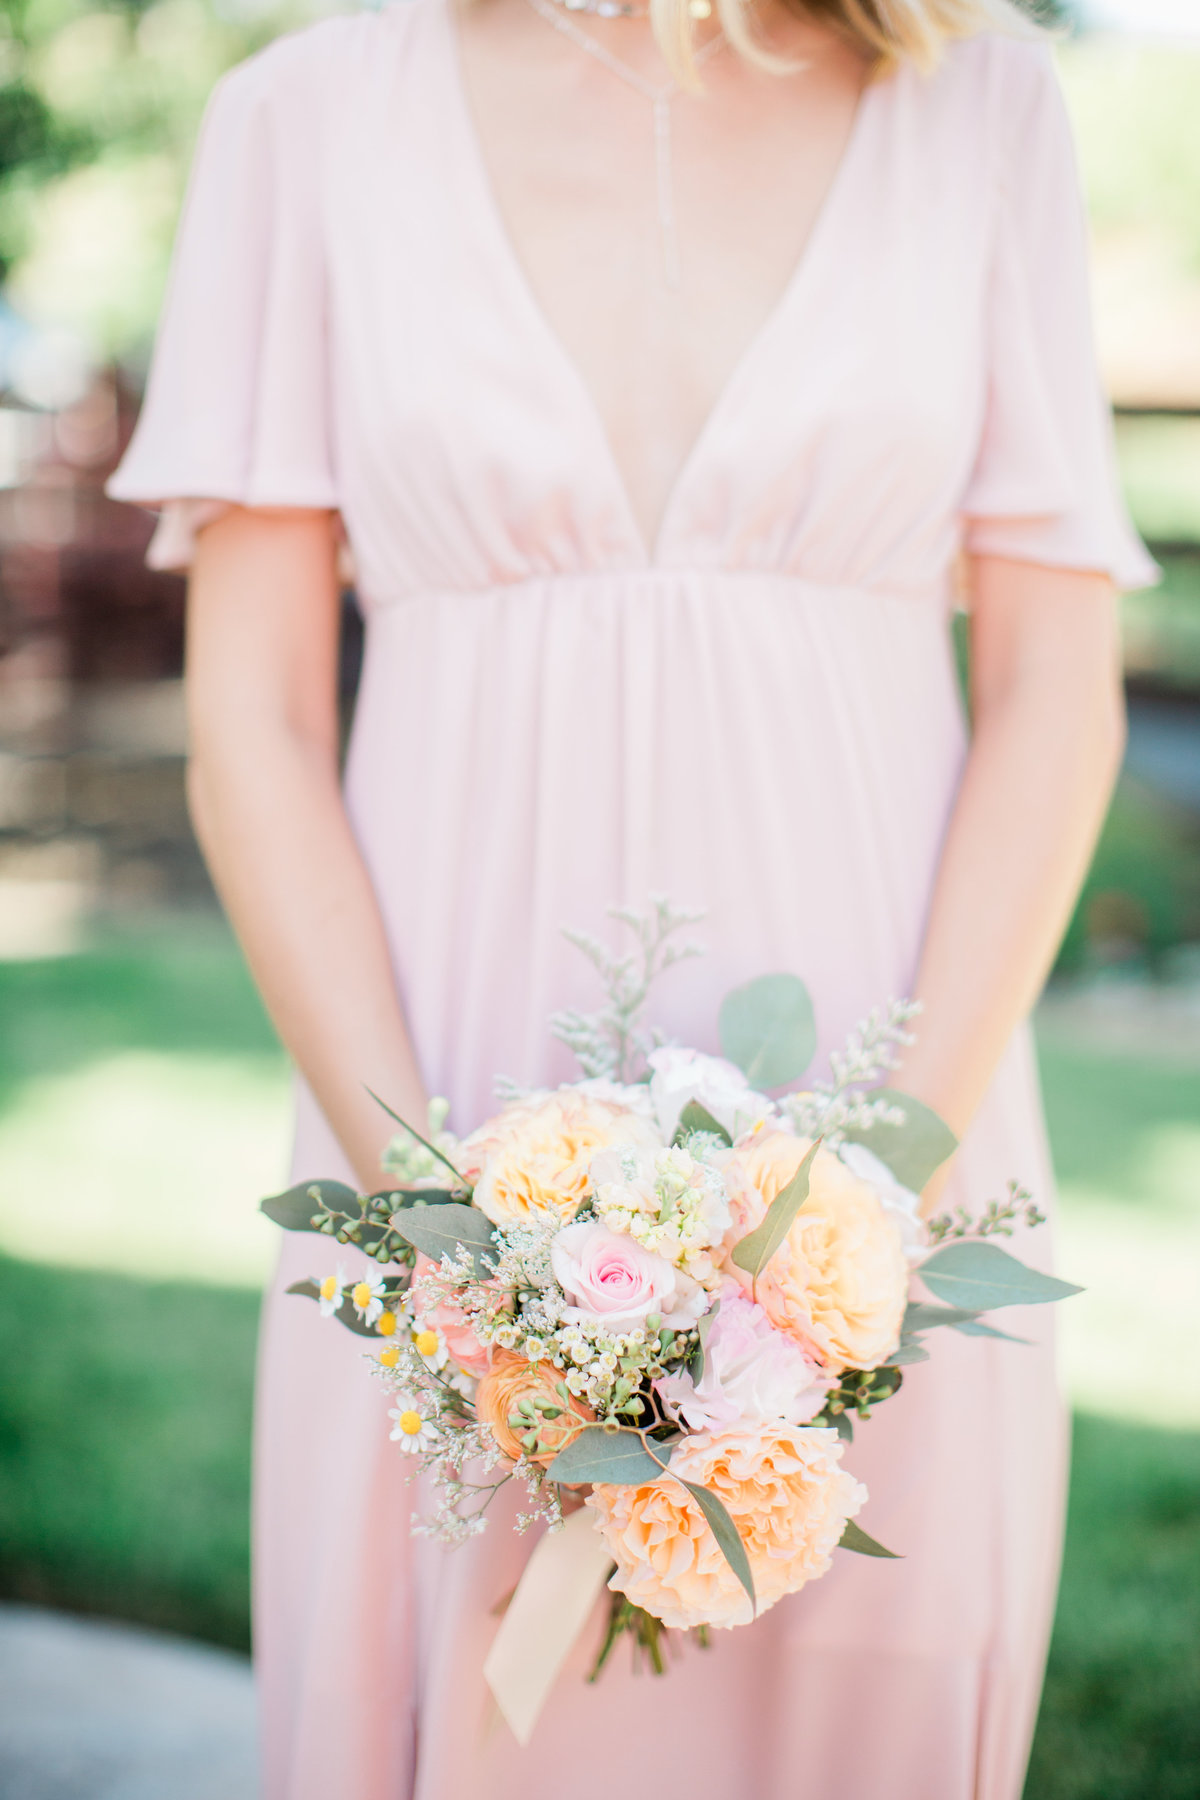 Carissa and Tyler Sneak Peek | California Wedding Photographer | Katie Schoepflin Photography 2018.5